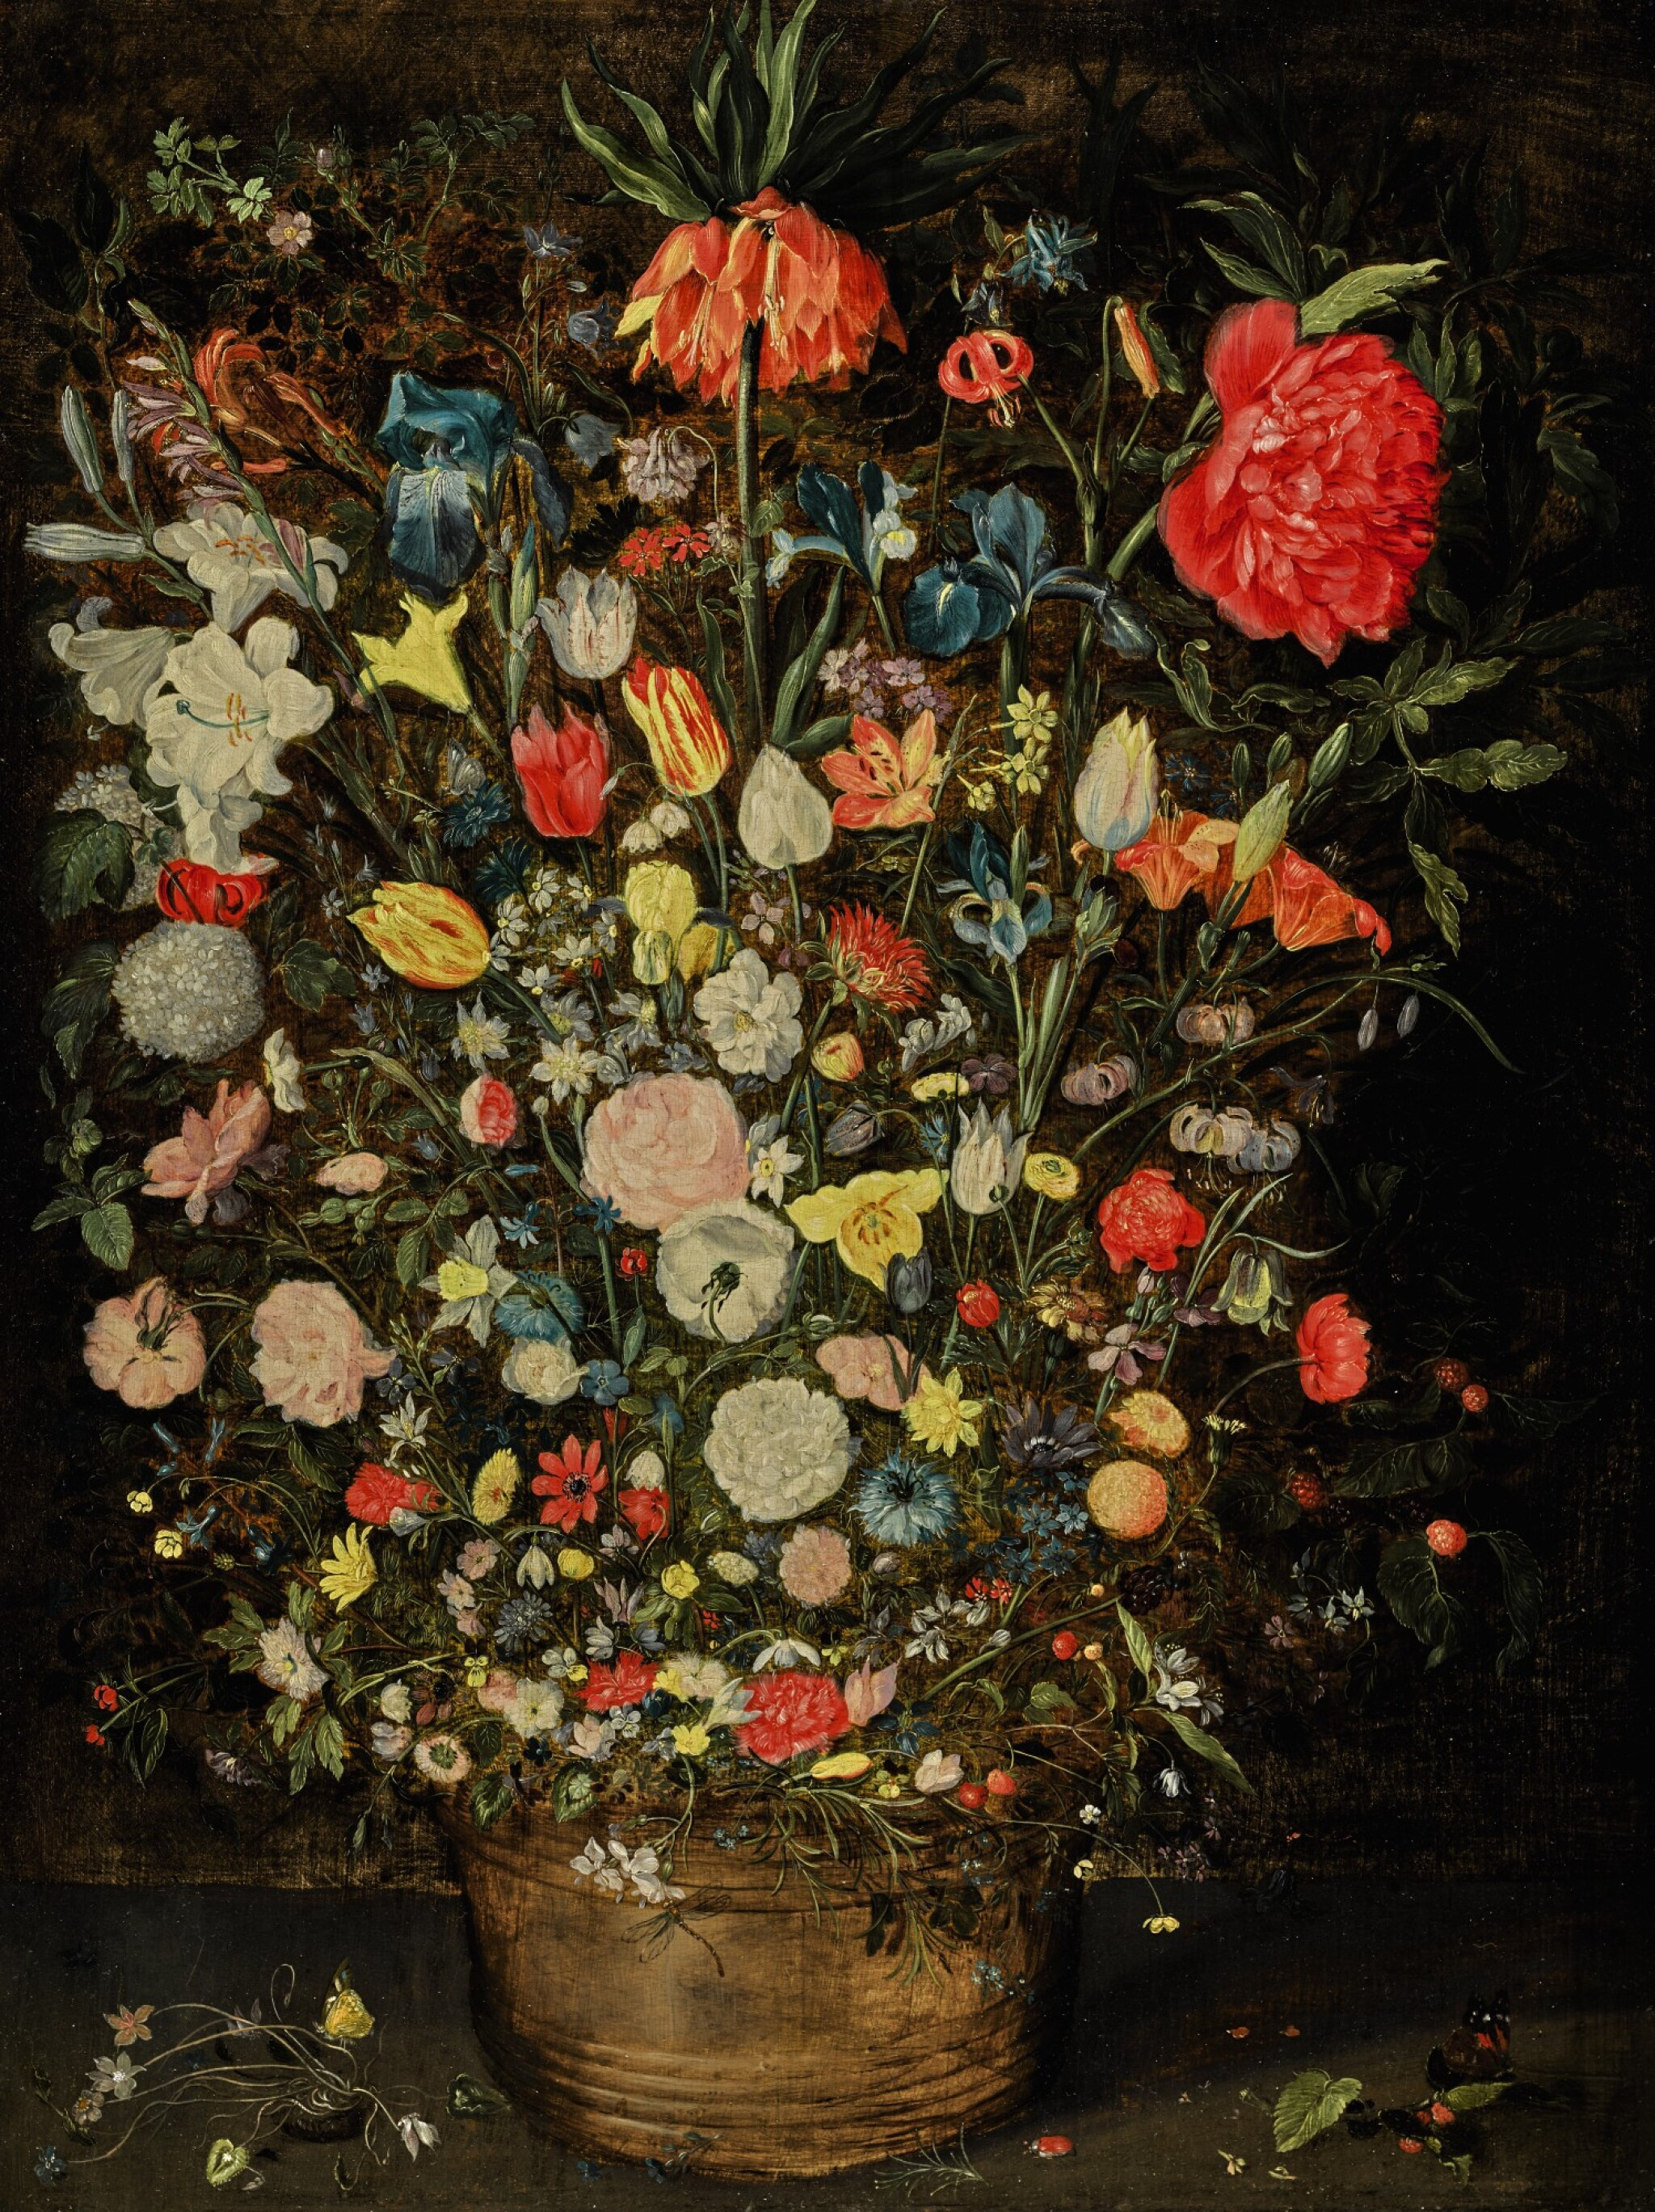 View full screen - View 1 of Lot 25. Still life with a large bouquet of flowers in a wooden bucket, including a crown imperial lily, roses, tulips and other flowers, with butterflies, insects and berries on the shelf beneath |《靜物畫:木盆裡的大束鮮花,包括一朵冠花貝母、玫瑰、鬱金香,盆架上有蝴蝶、昆蟲、莓果》.